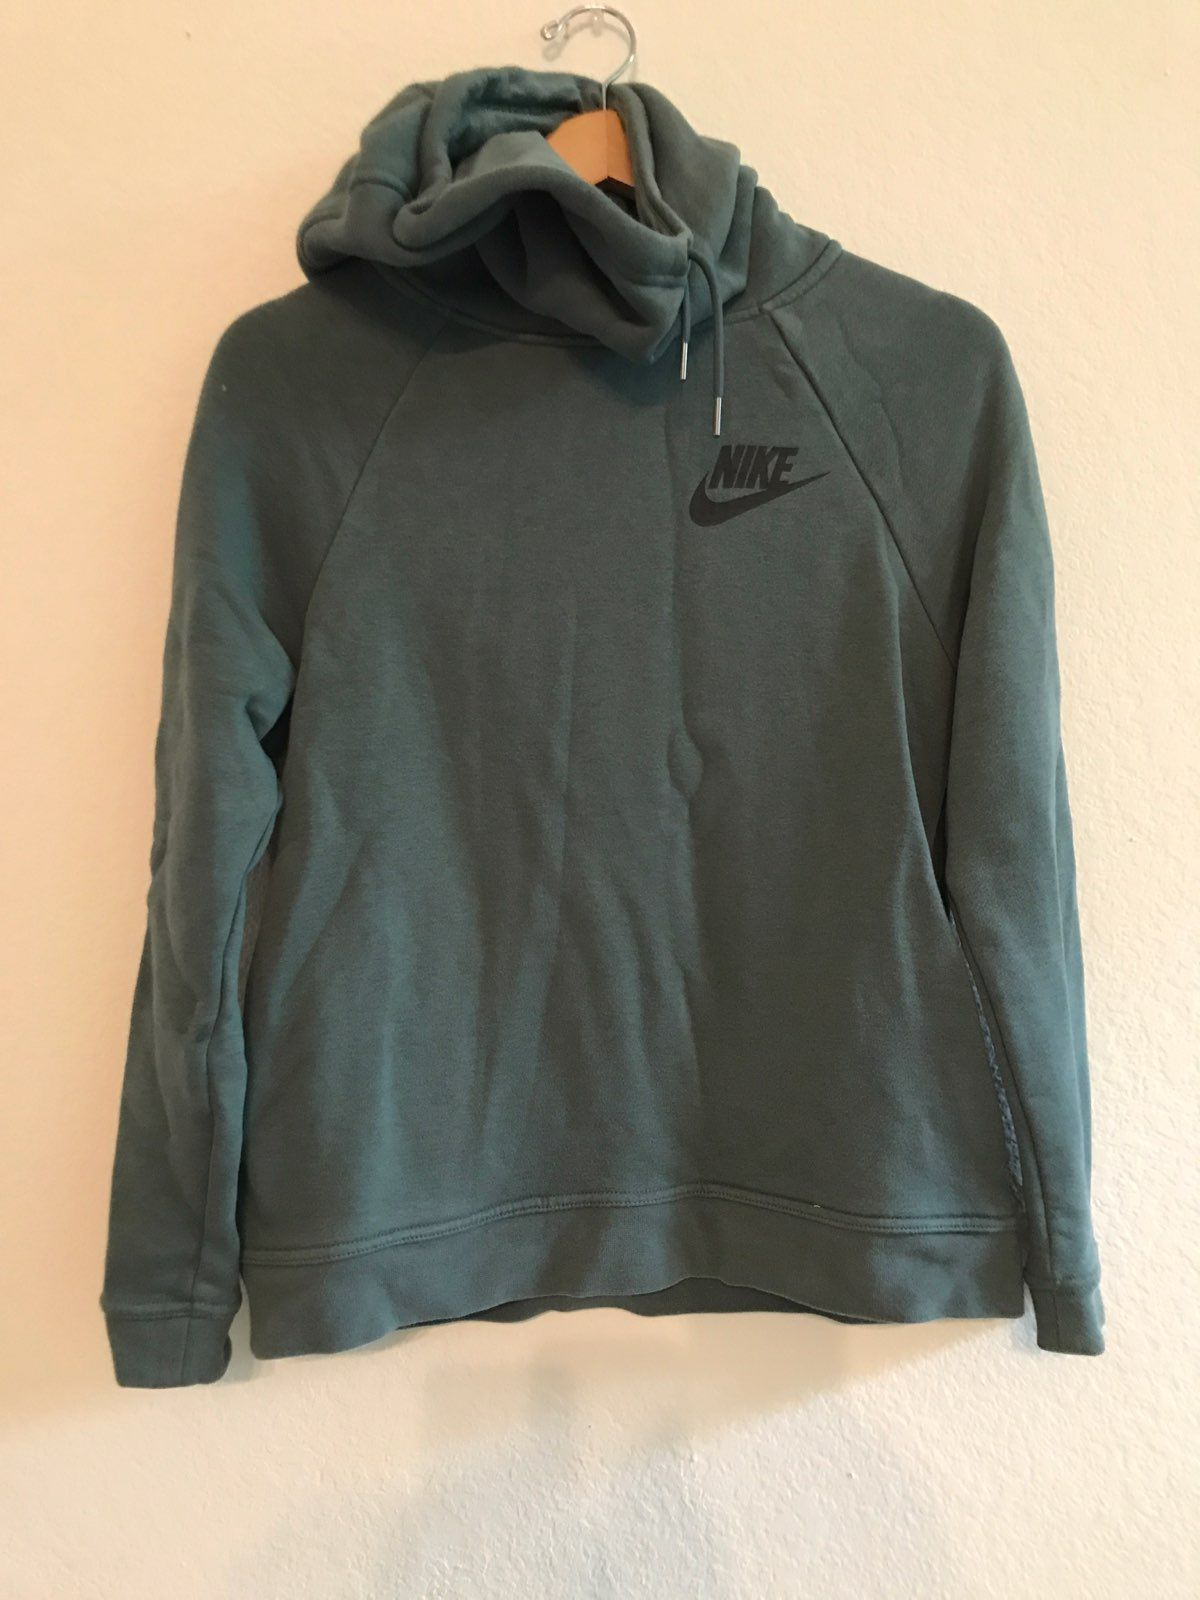 Women's Nike Hooded Pullover Sweater S - Mercari: BUY & SELL ...